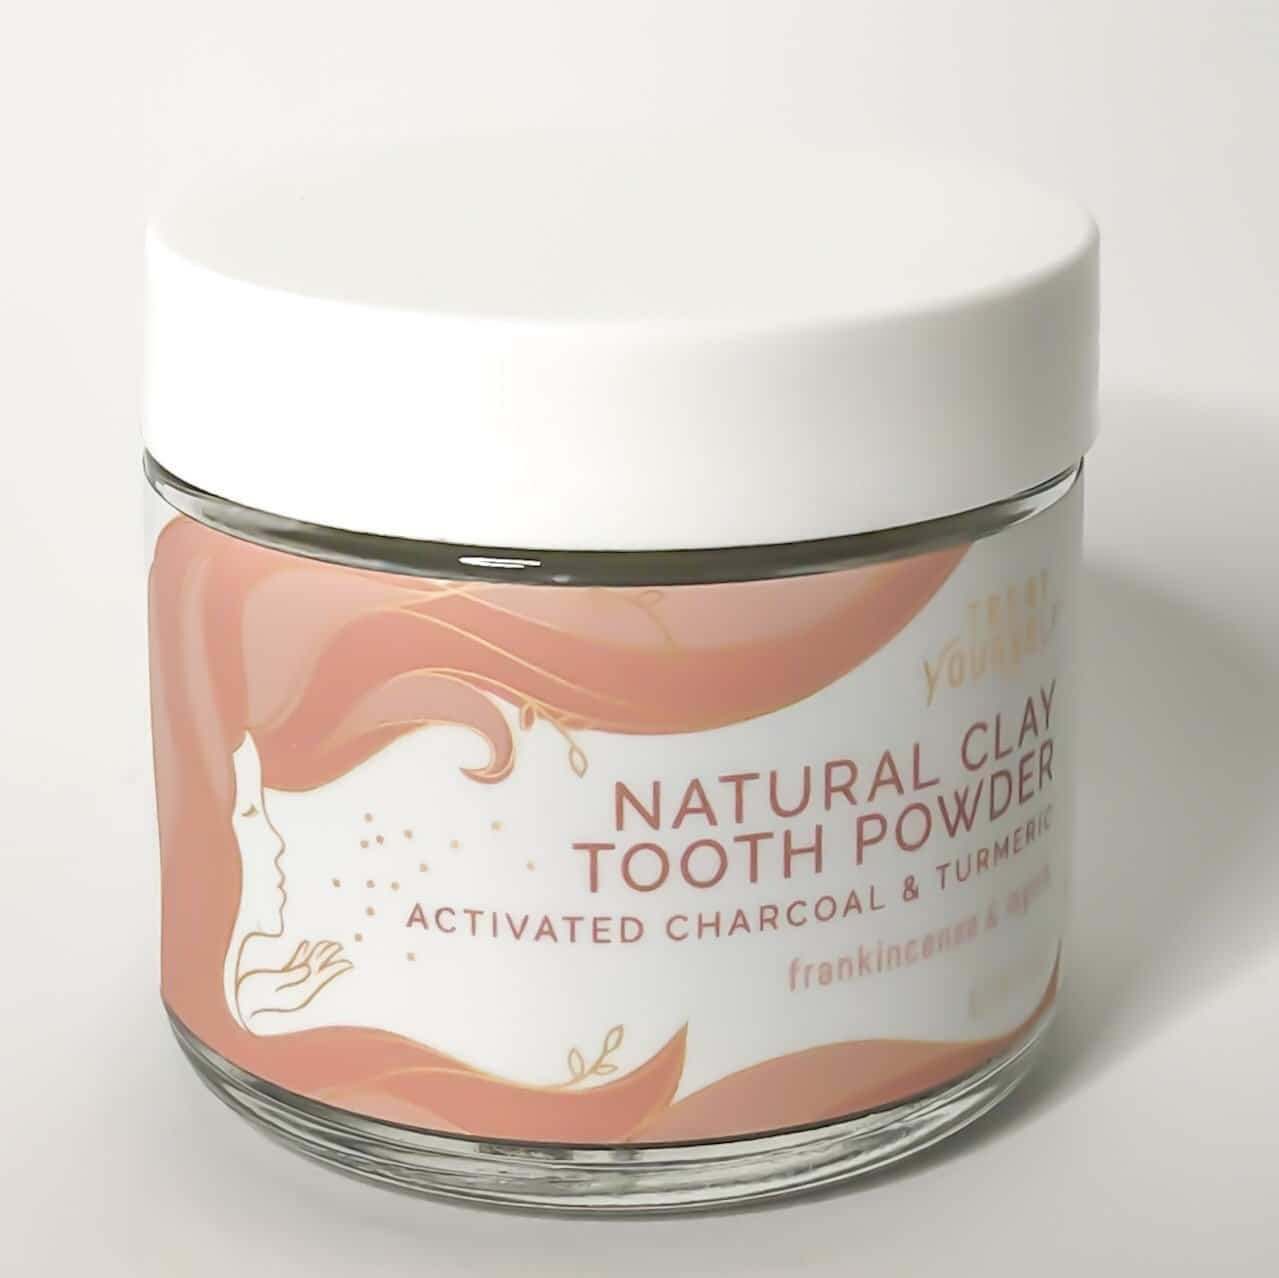 treat yourself natural clay toothpowder